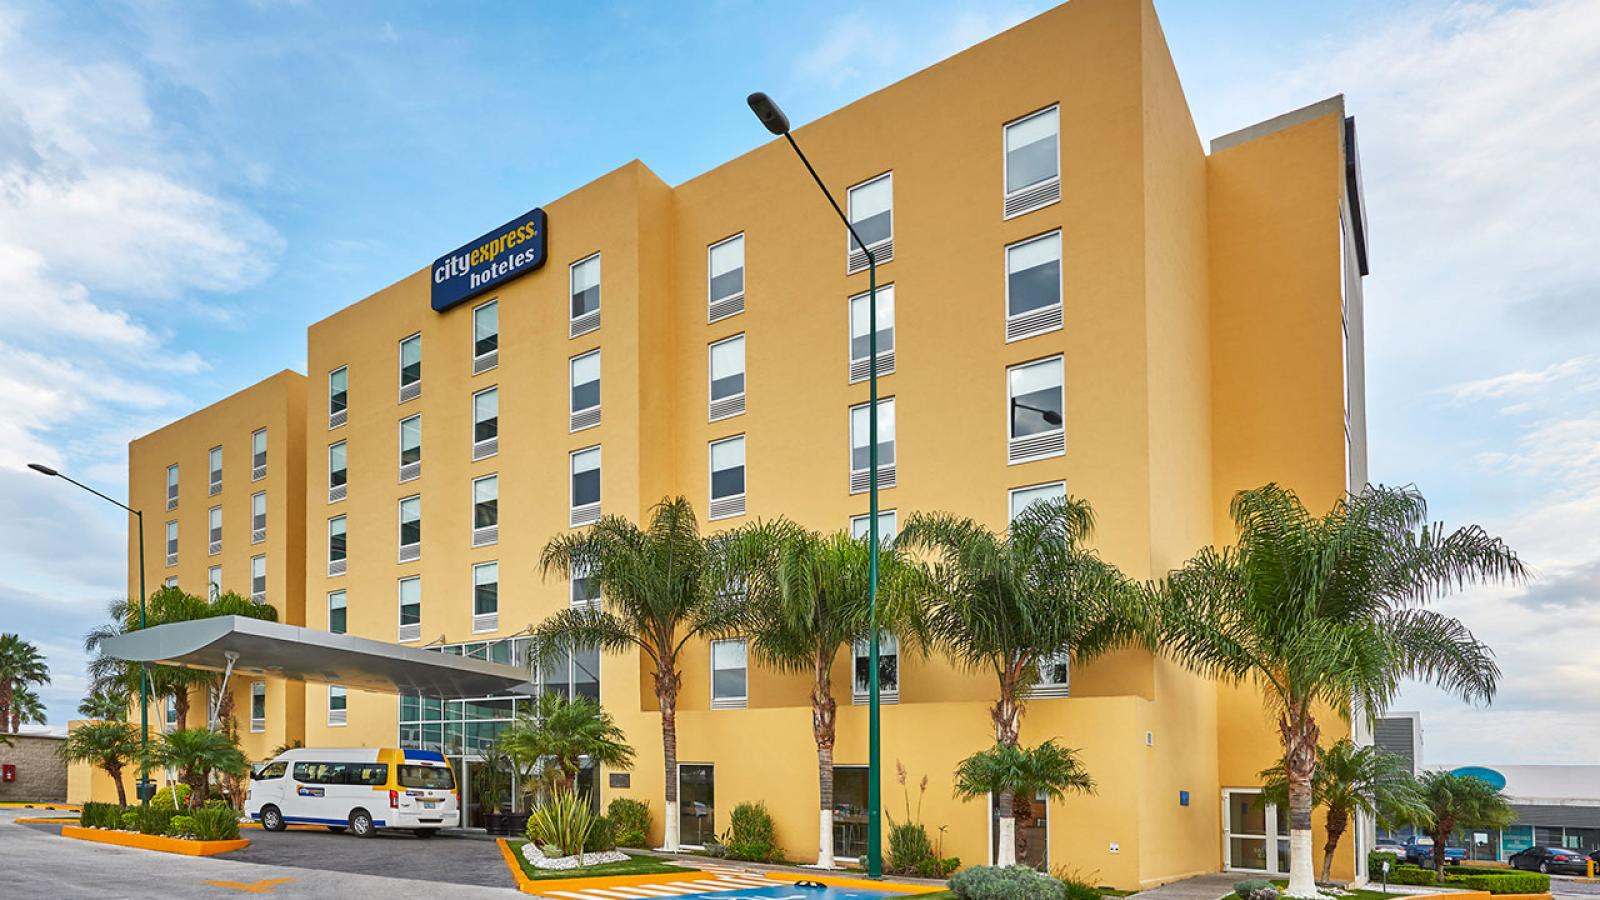 City express irapuato city express hotels for Hotels genes